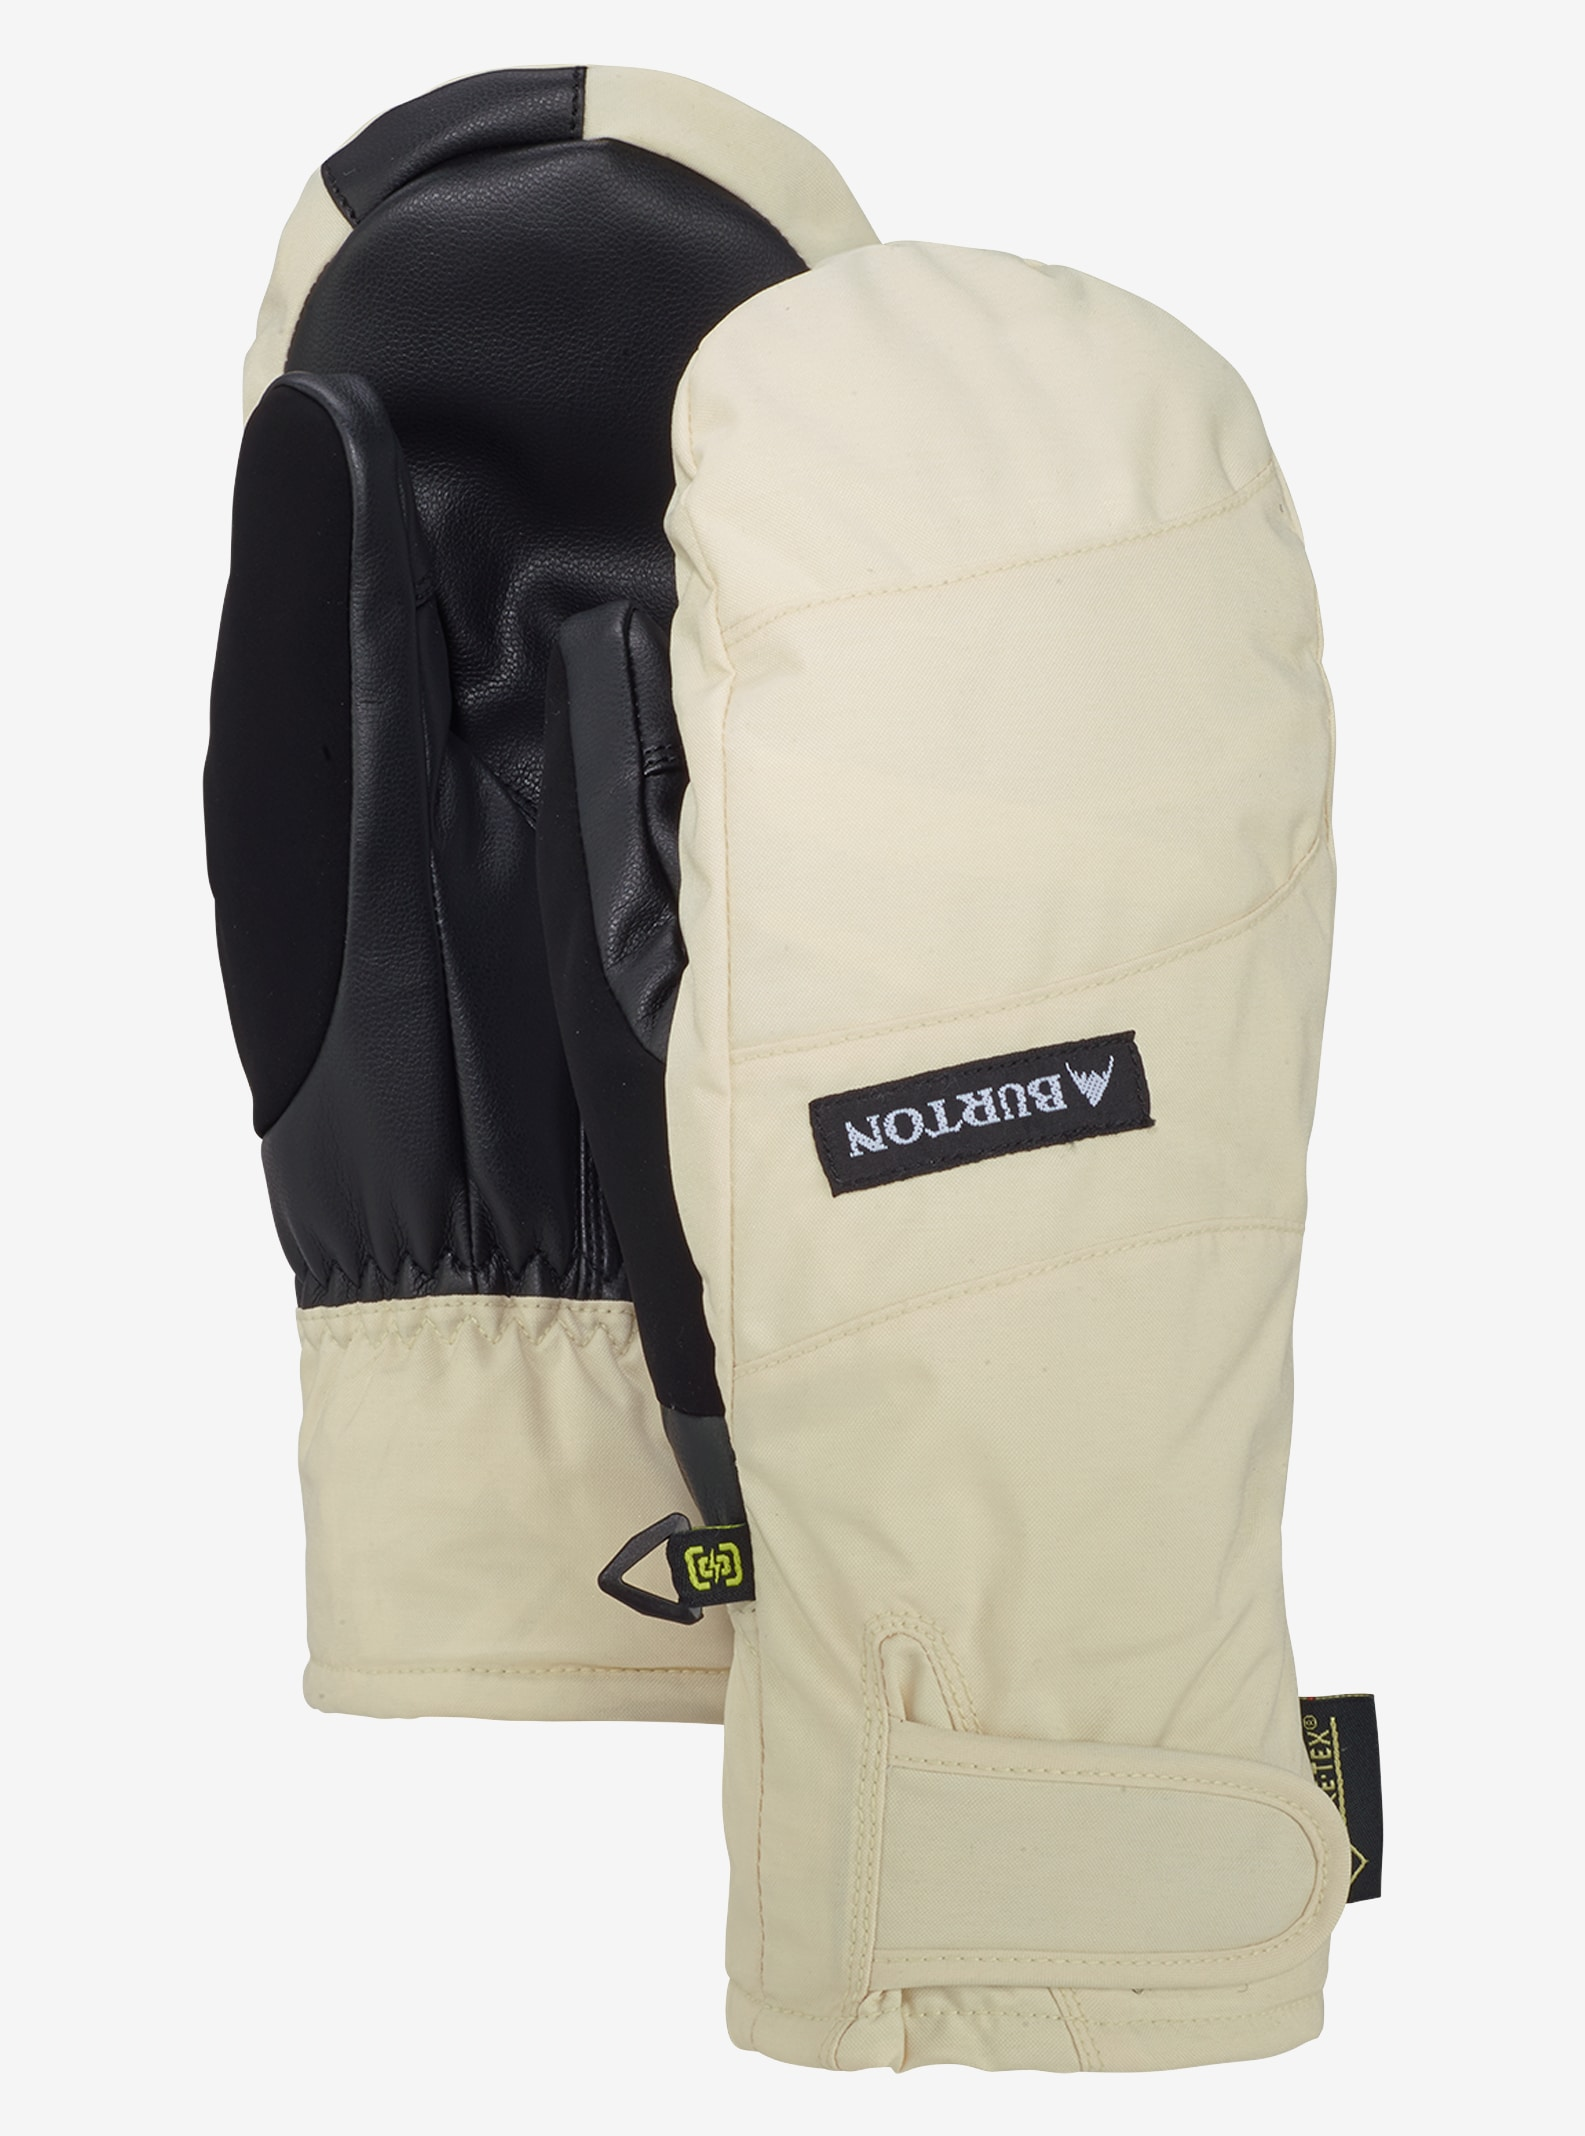 Women's Burton Reverb GORE‑TEX® Mitt shown in Canvas